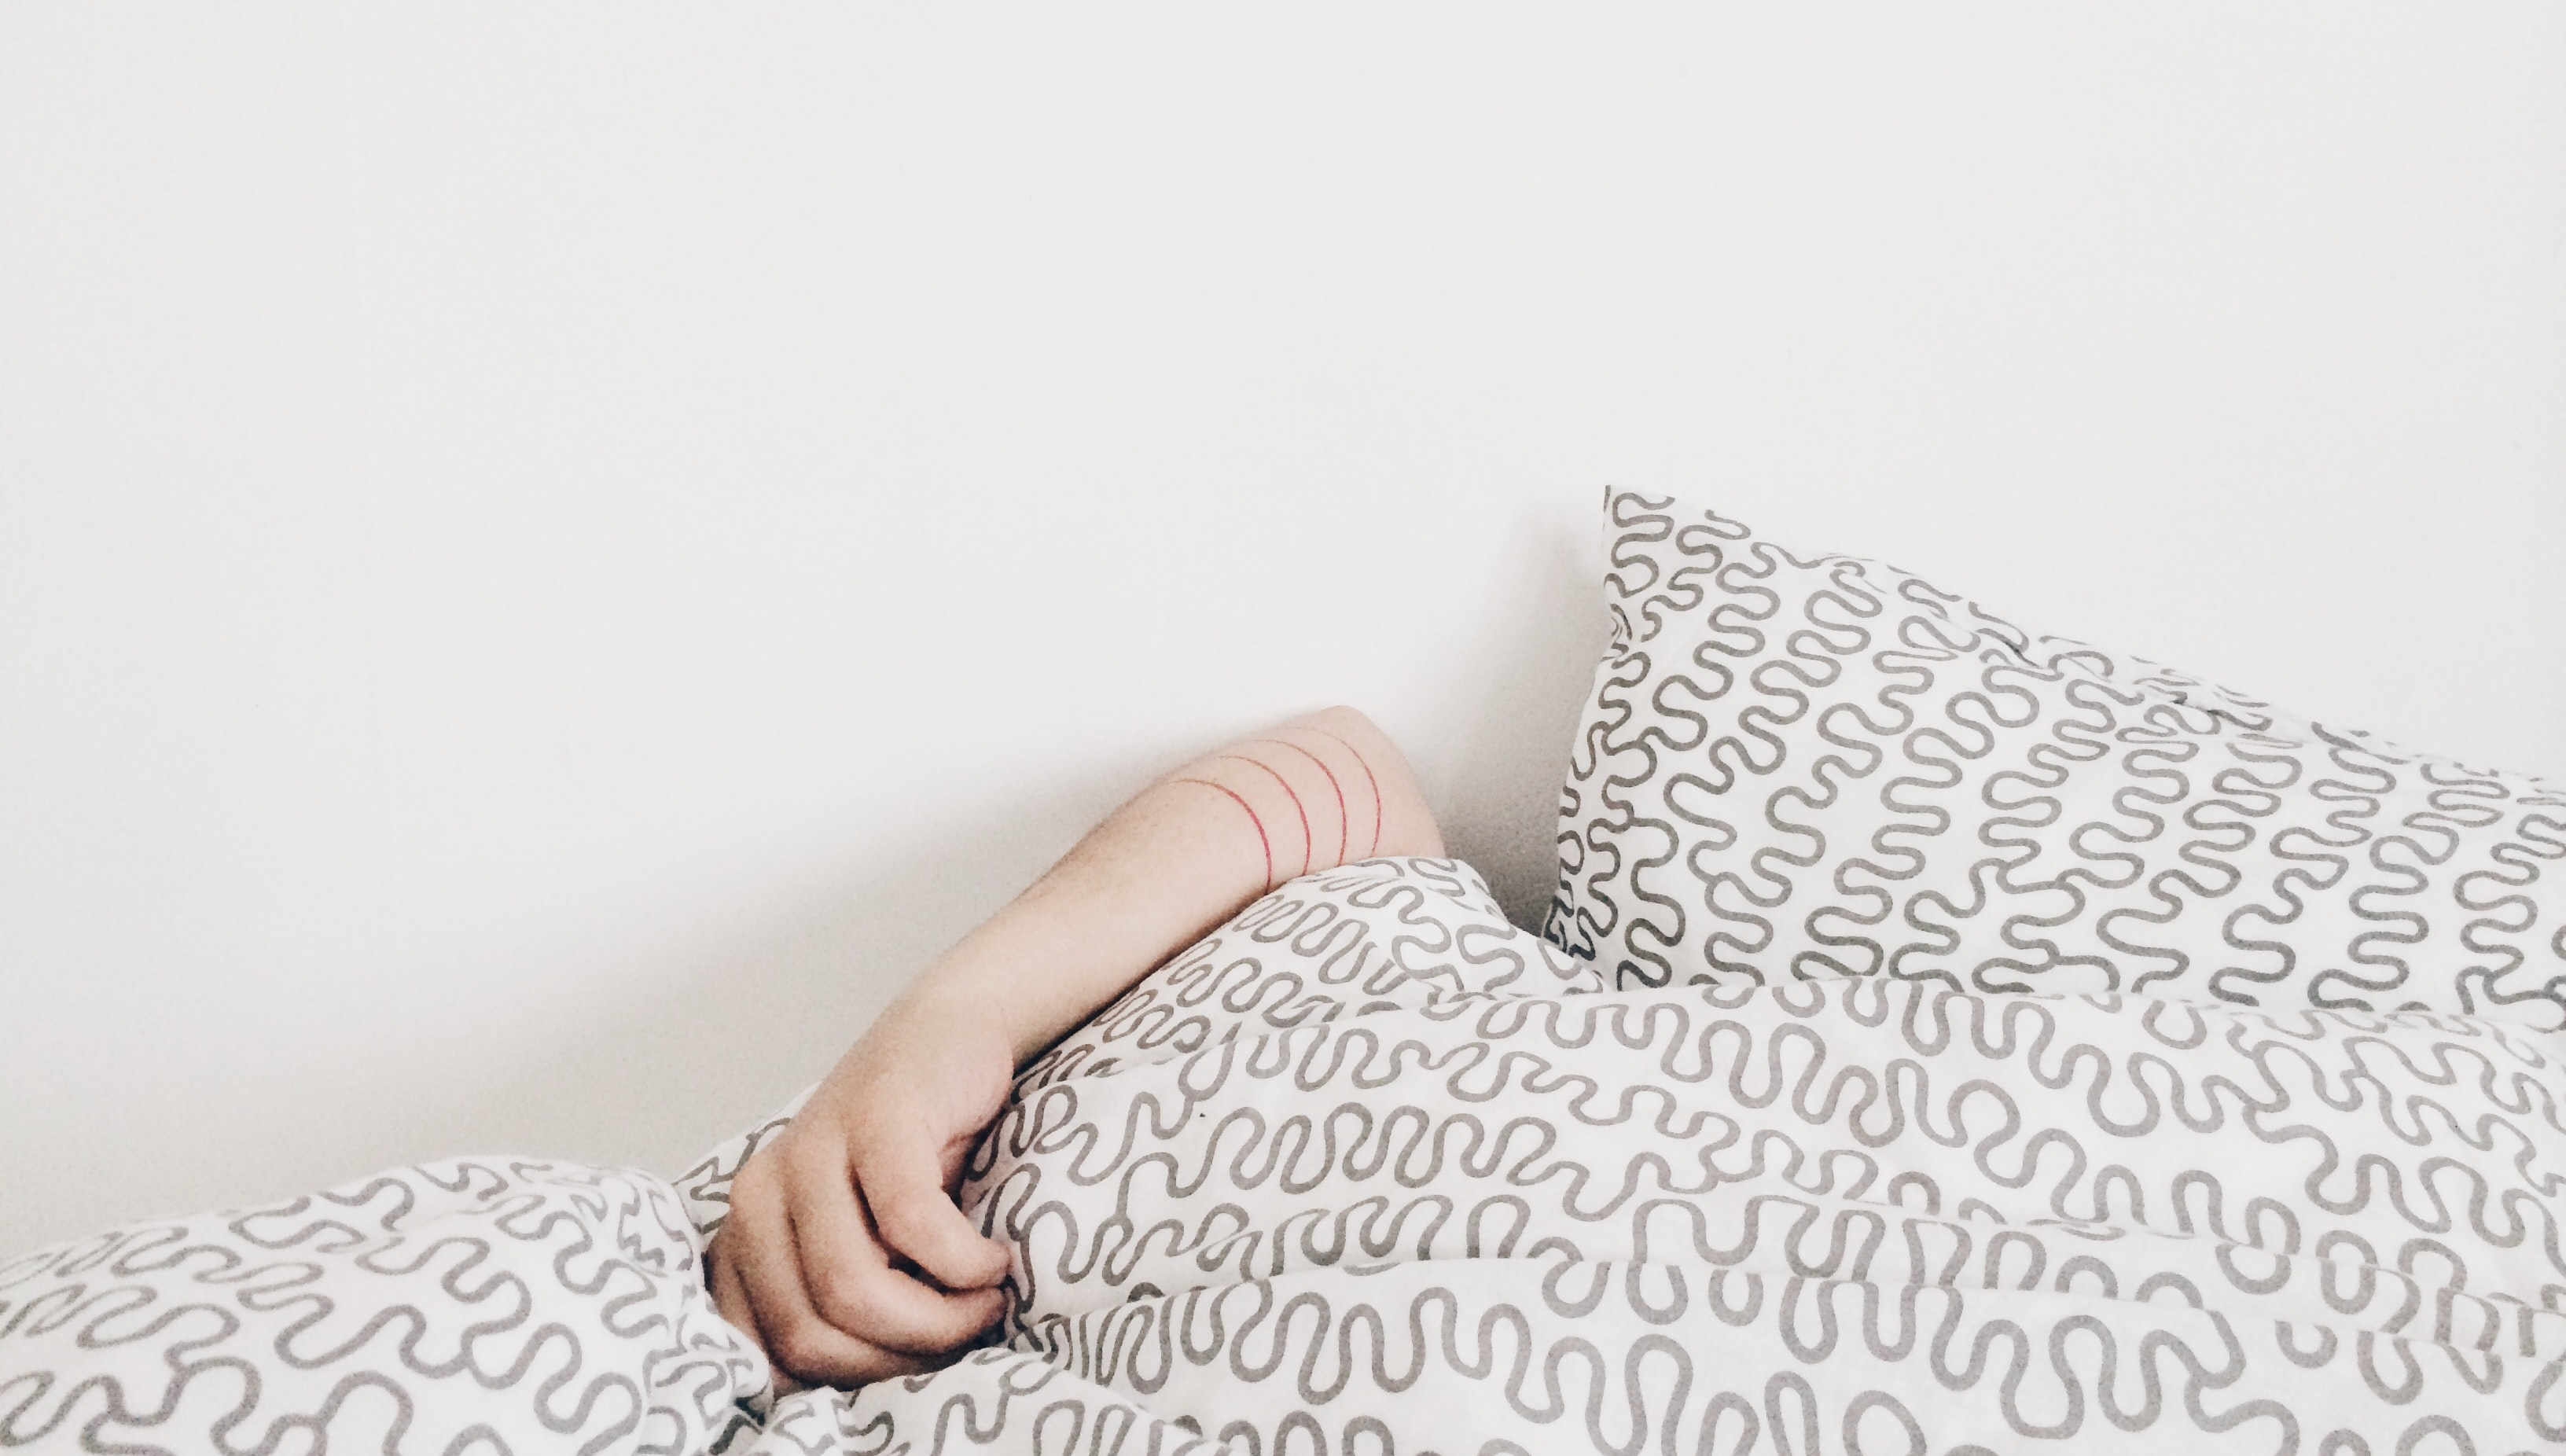 A white bedspread with grey squiggles, in front of a white wall. There is a Caucasian person's arm coming out of the bed spread.